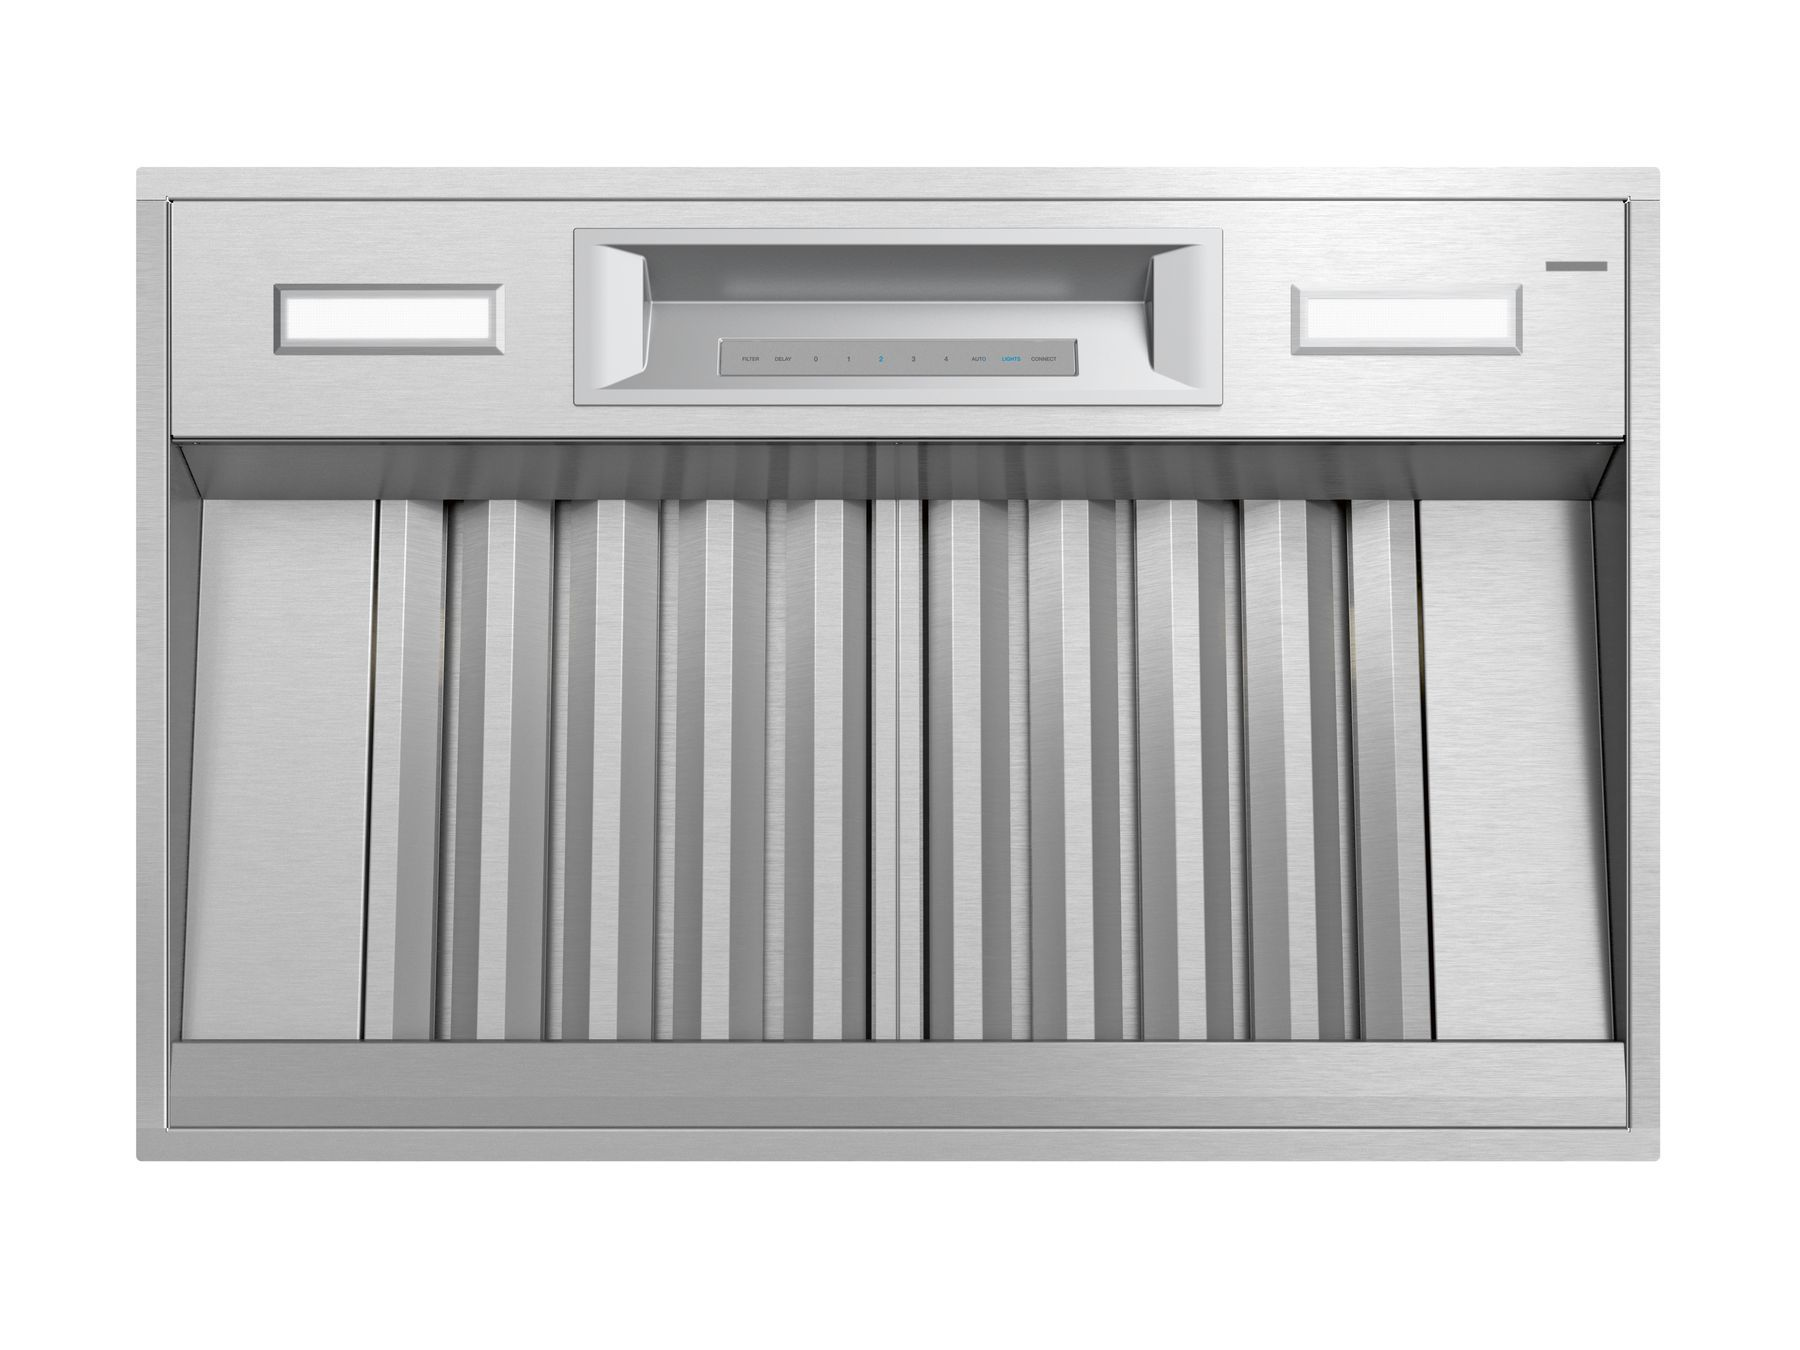 36 Inch Professional Custom Insert Vcin36gws Thermador Thermador Appliances Design Appliances Storage